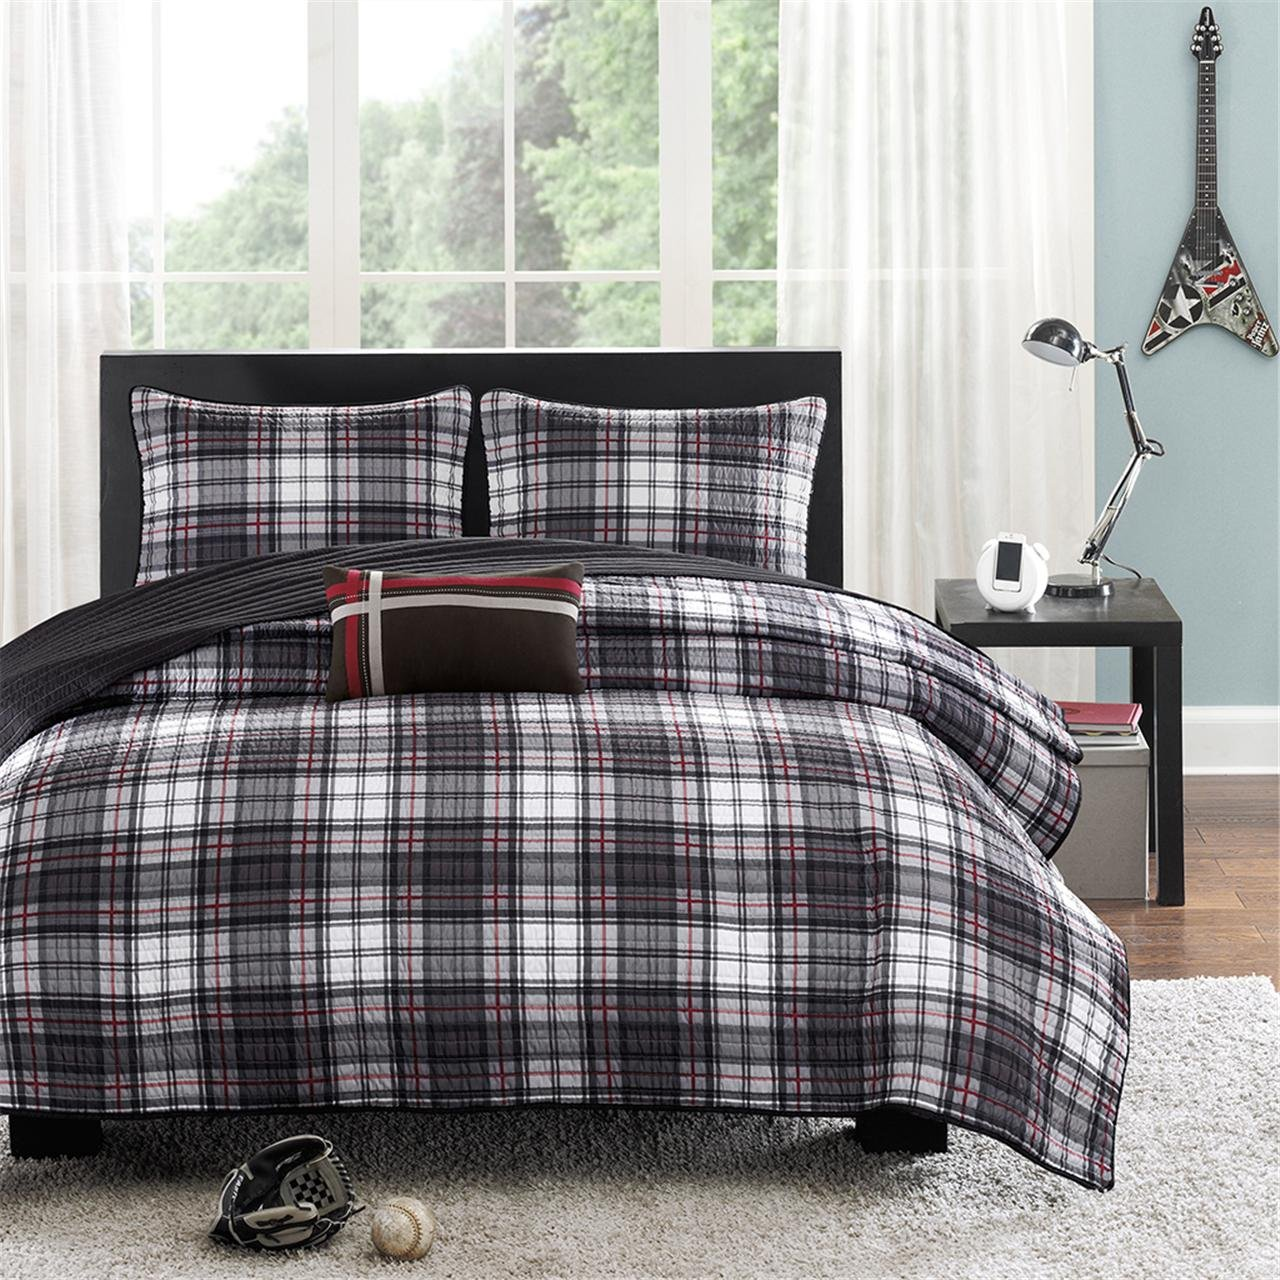 Mi-Zone Harley Twin/Twin XL Size Teen Boys Quilt Bedding Set - Black, Plaid - 3 Piece Boys Bedding Quilt Coverlets - Ultra Soft Microfiber Bed Quilts Quilted Coverlet